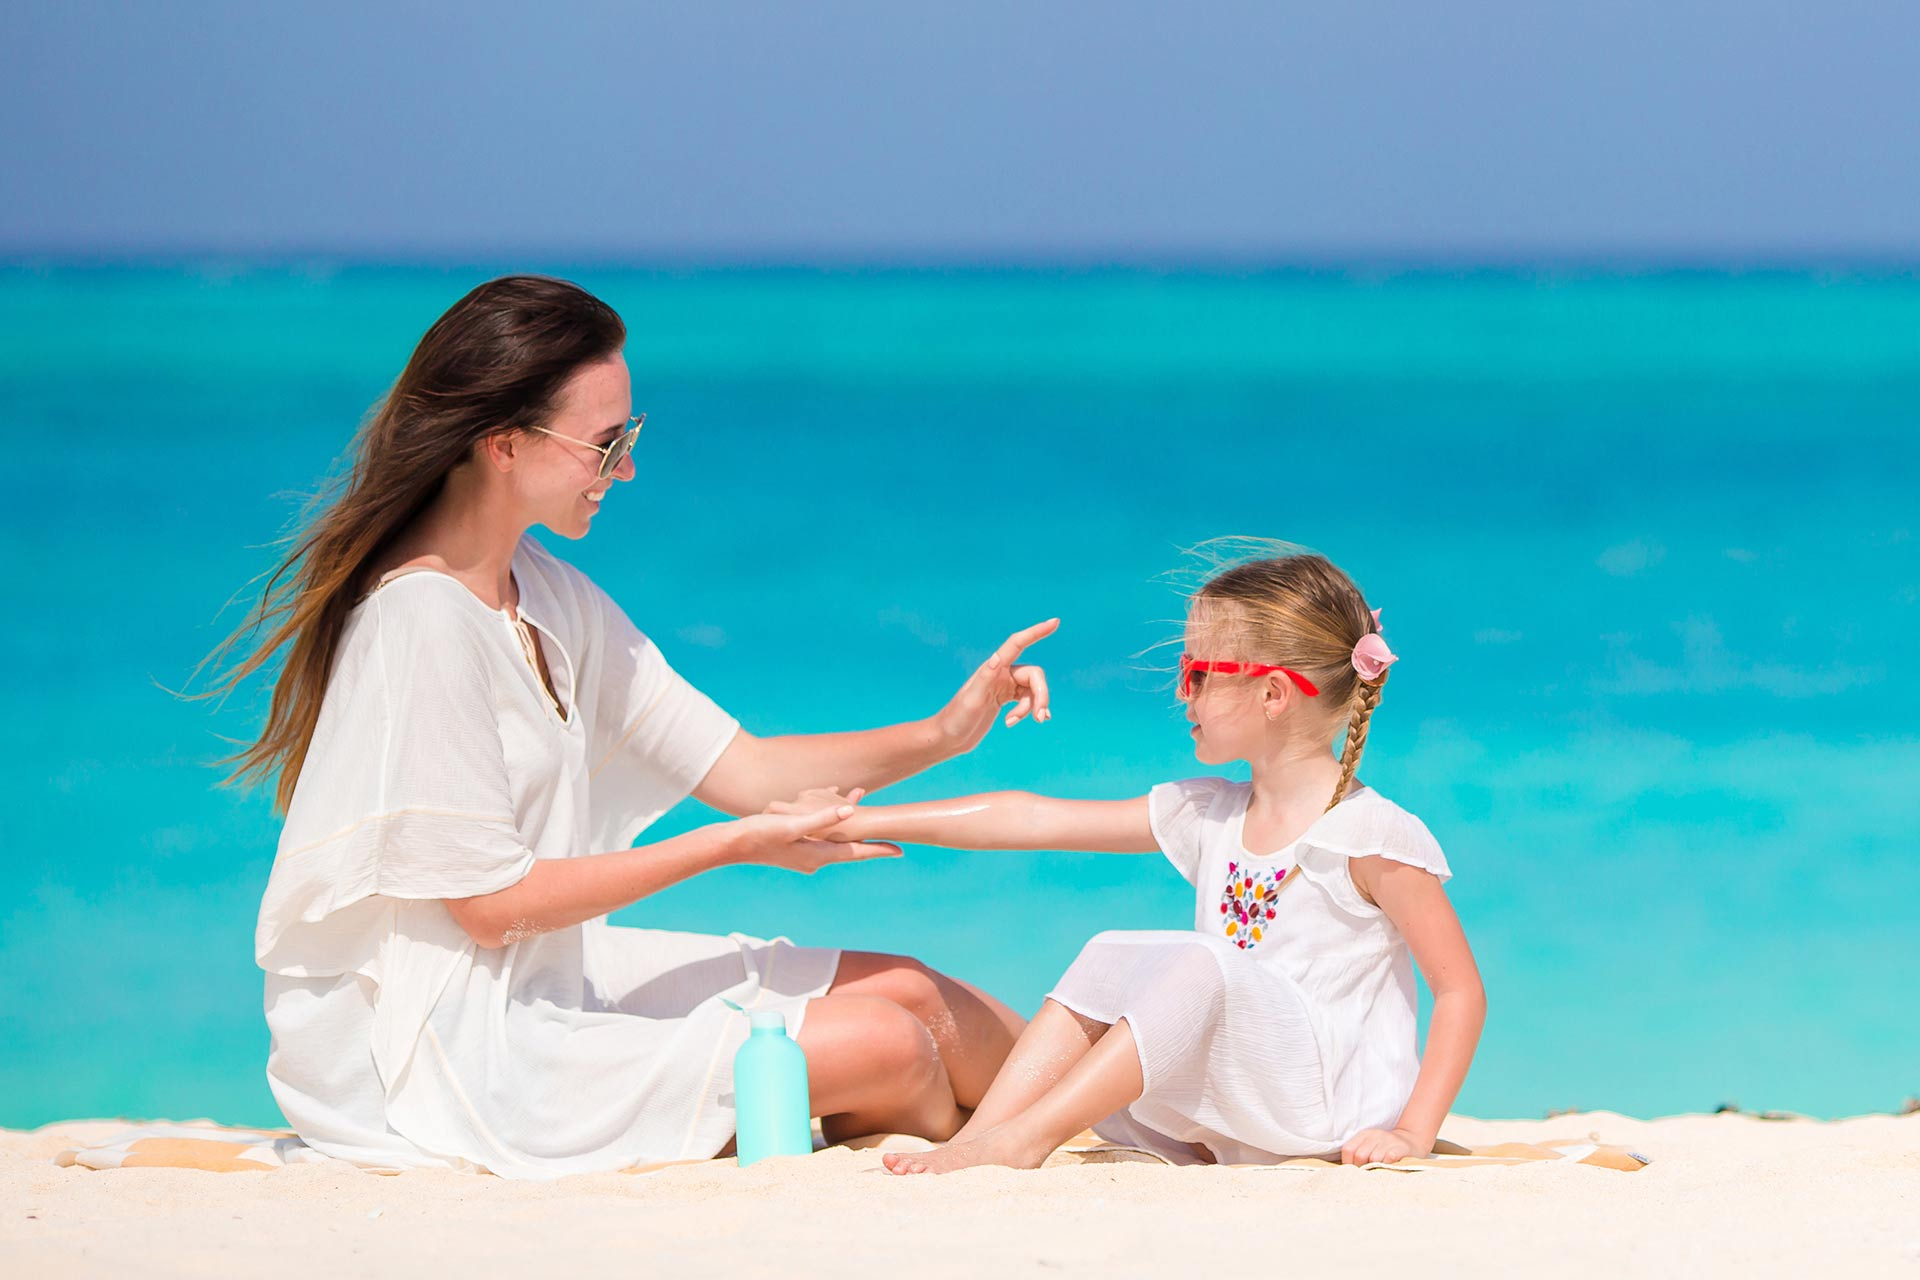 A mom applying sunscreen on her daughter.